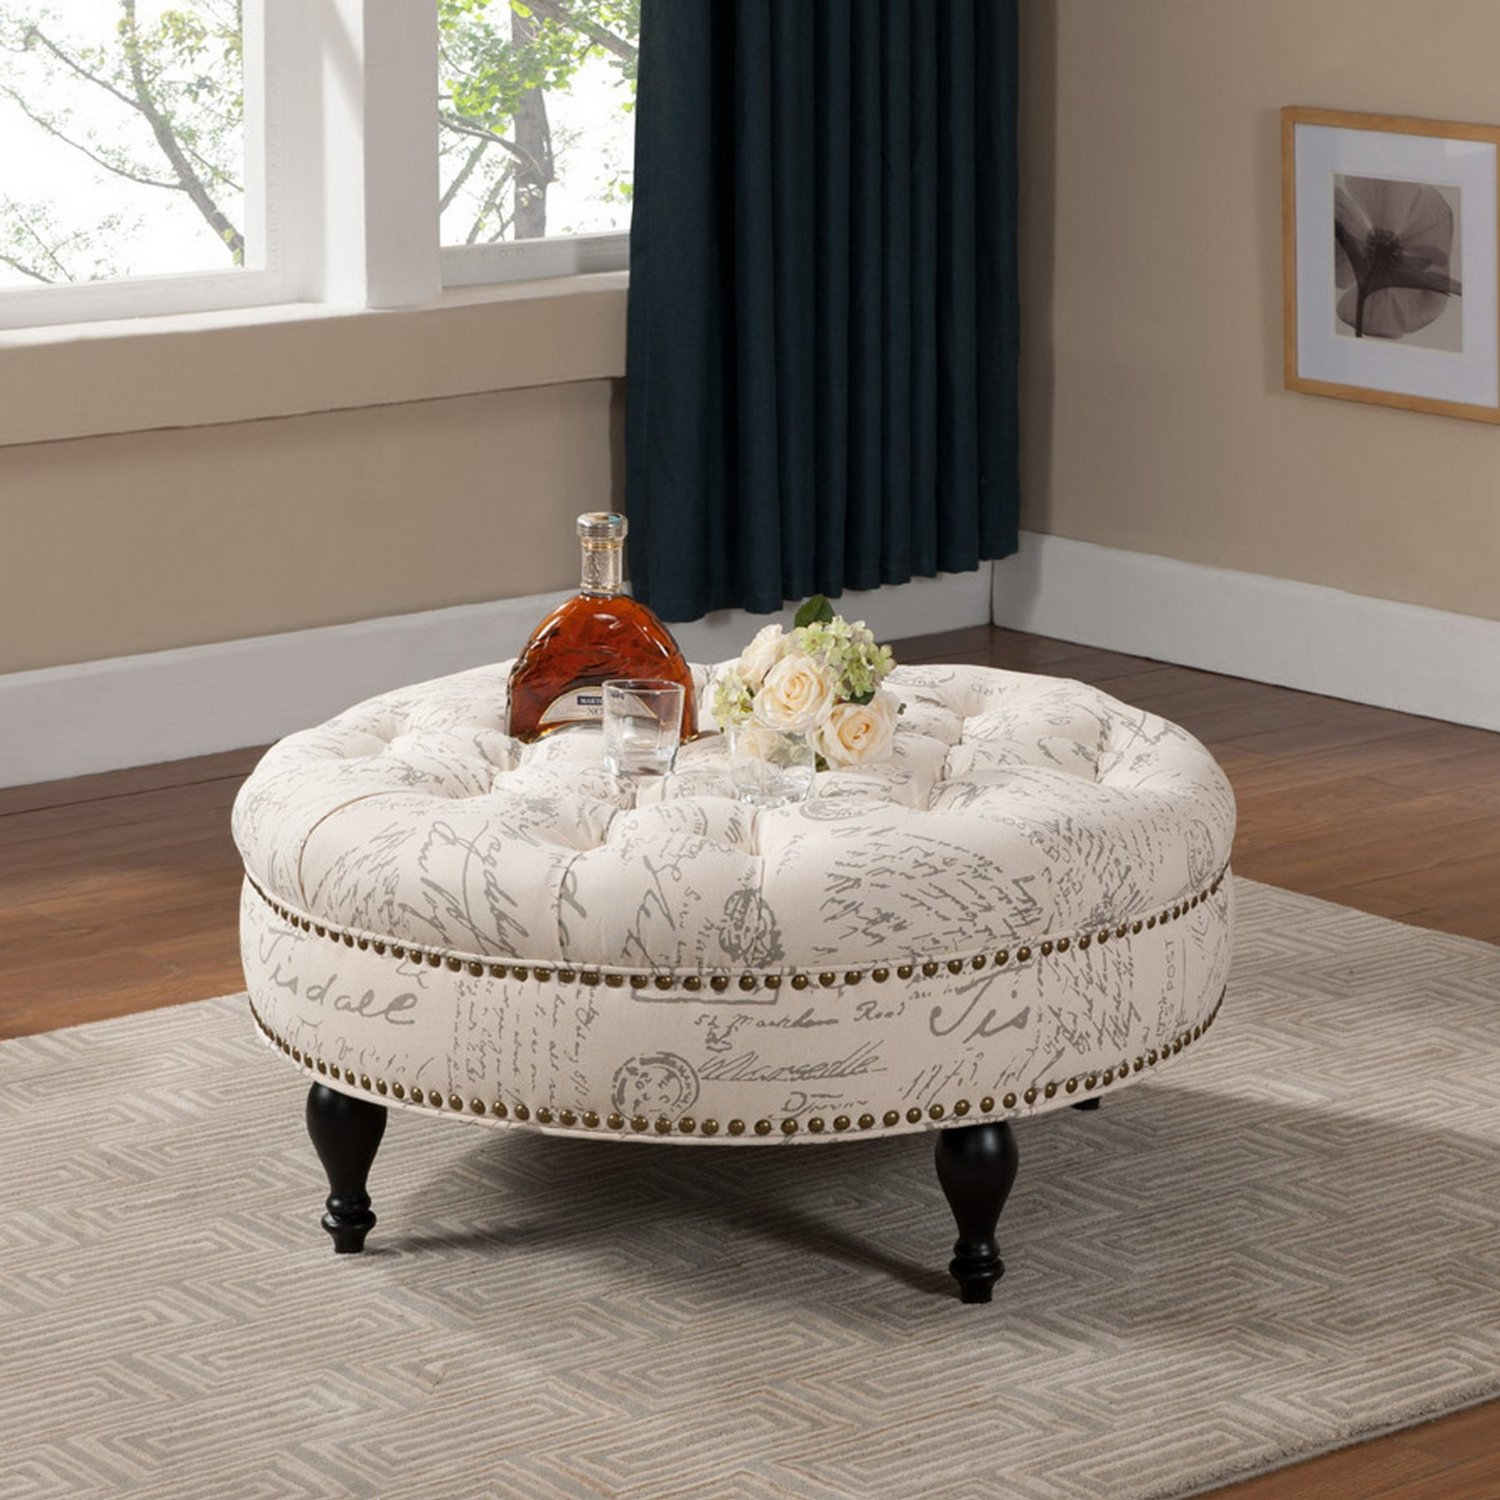 cushion ottoman coffee table | home hold design reference